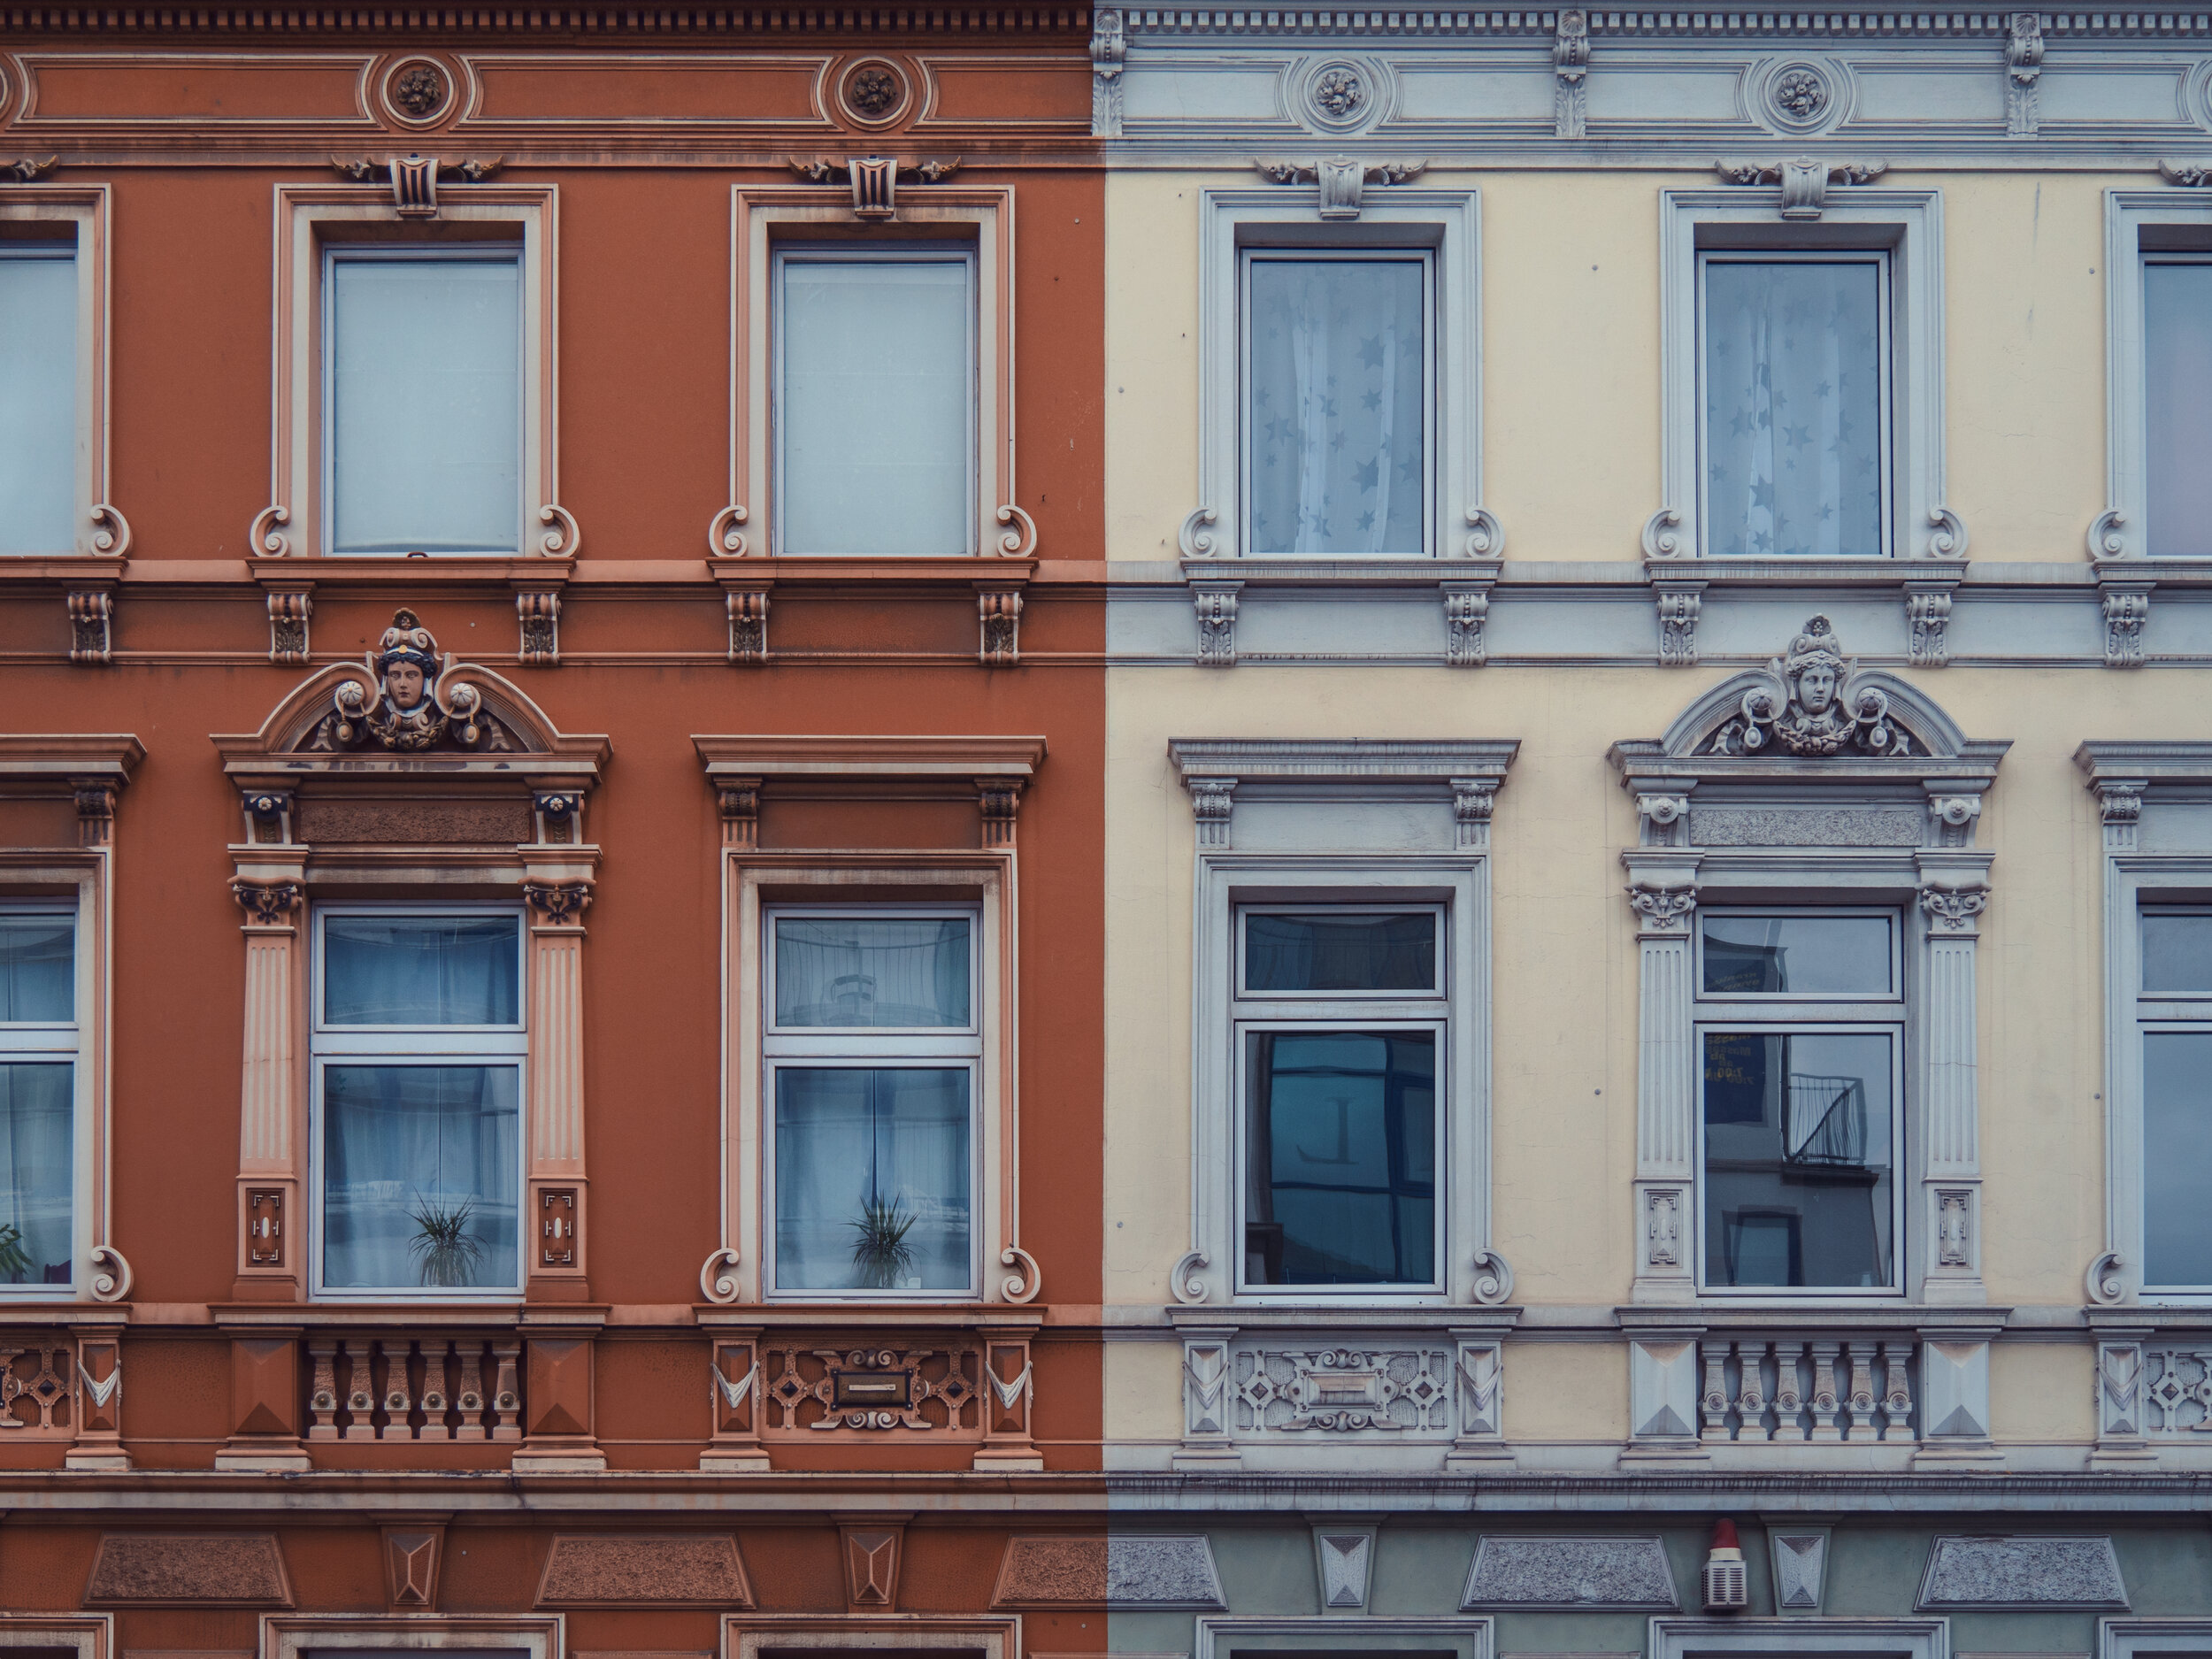 Partition Actions - Do you own a home or other real estate with someone, and cannot agree on what to do with it? Do you want to sell it and the other person wants to keep it? You may need to commence a legal partition action to address this issue.